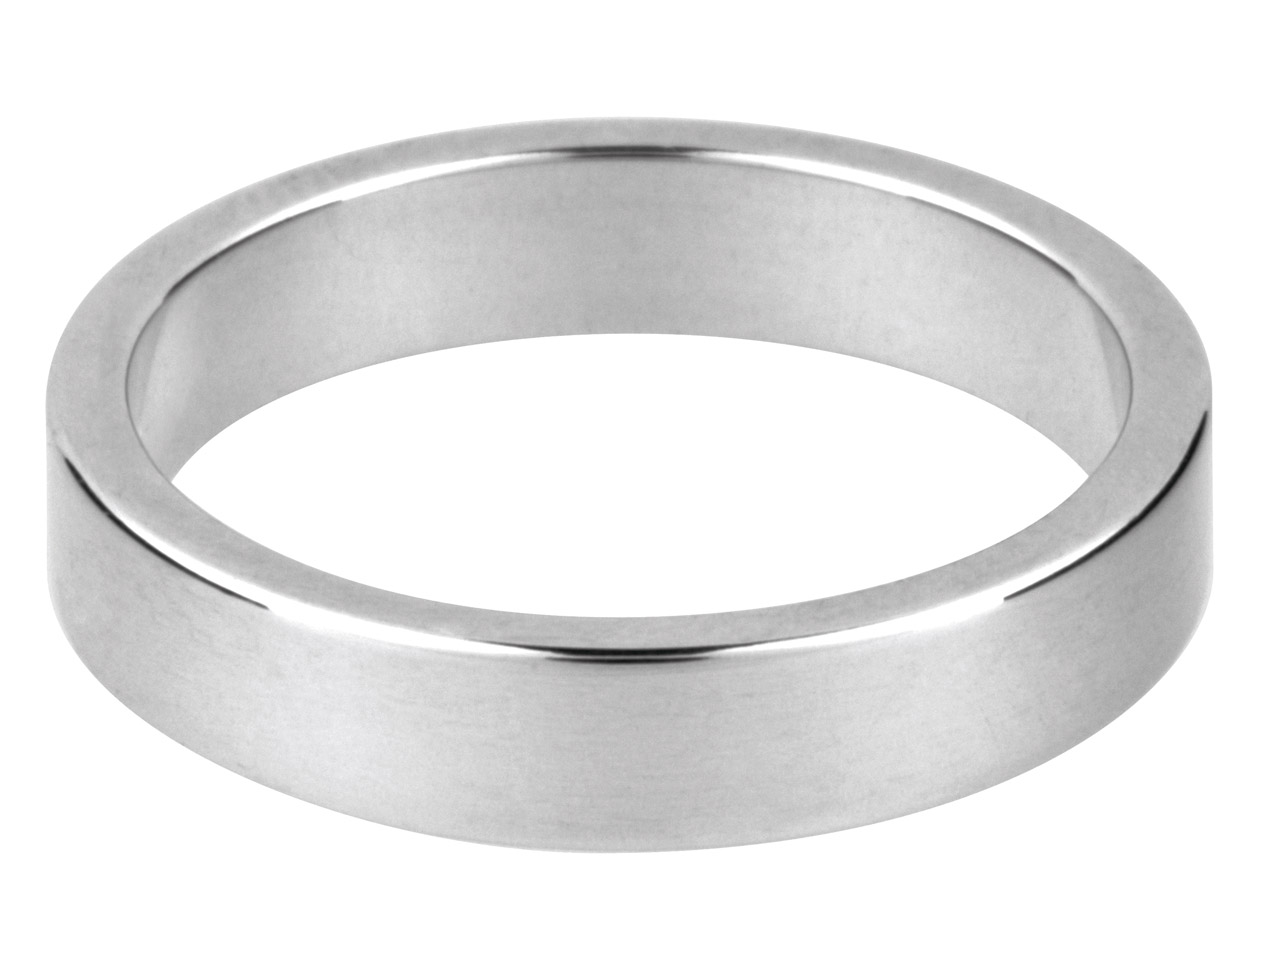 18ct White Gold Flat Wedding Ring  2.5mm, Size I, 3.1g Medium Weight, Hallmarked, Wall Thickness 1.38mm, 100% Recycled Gold